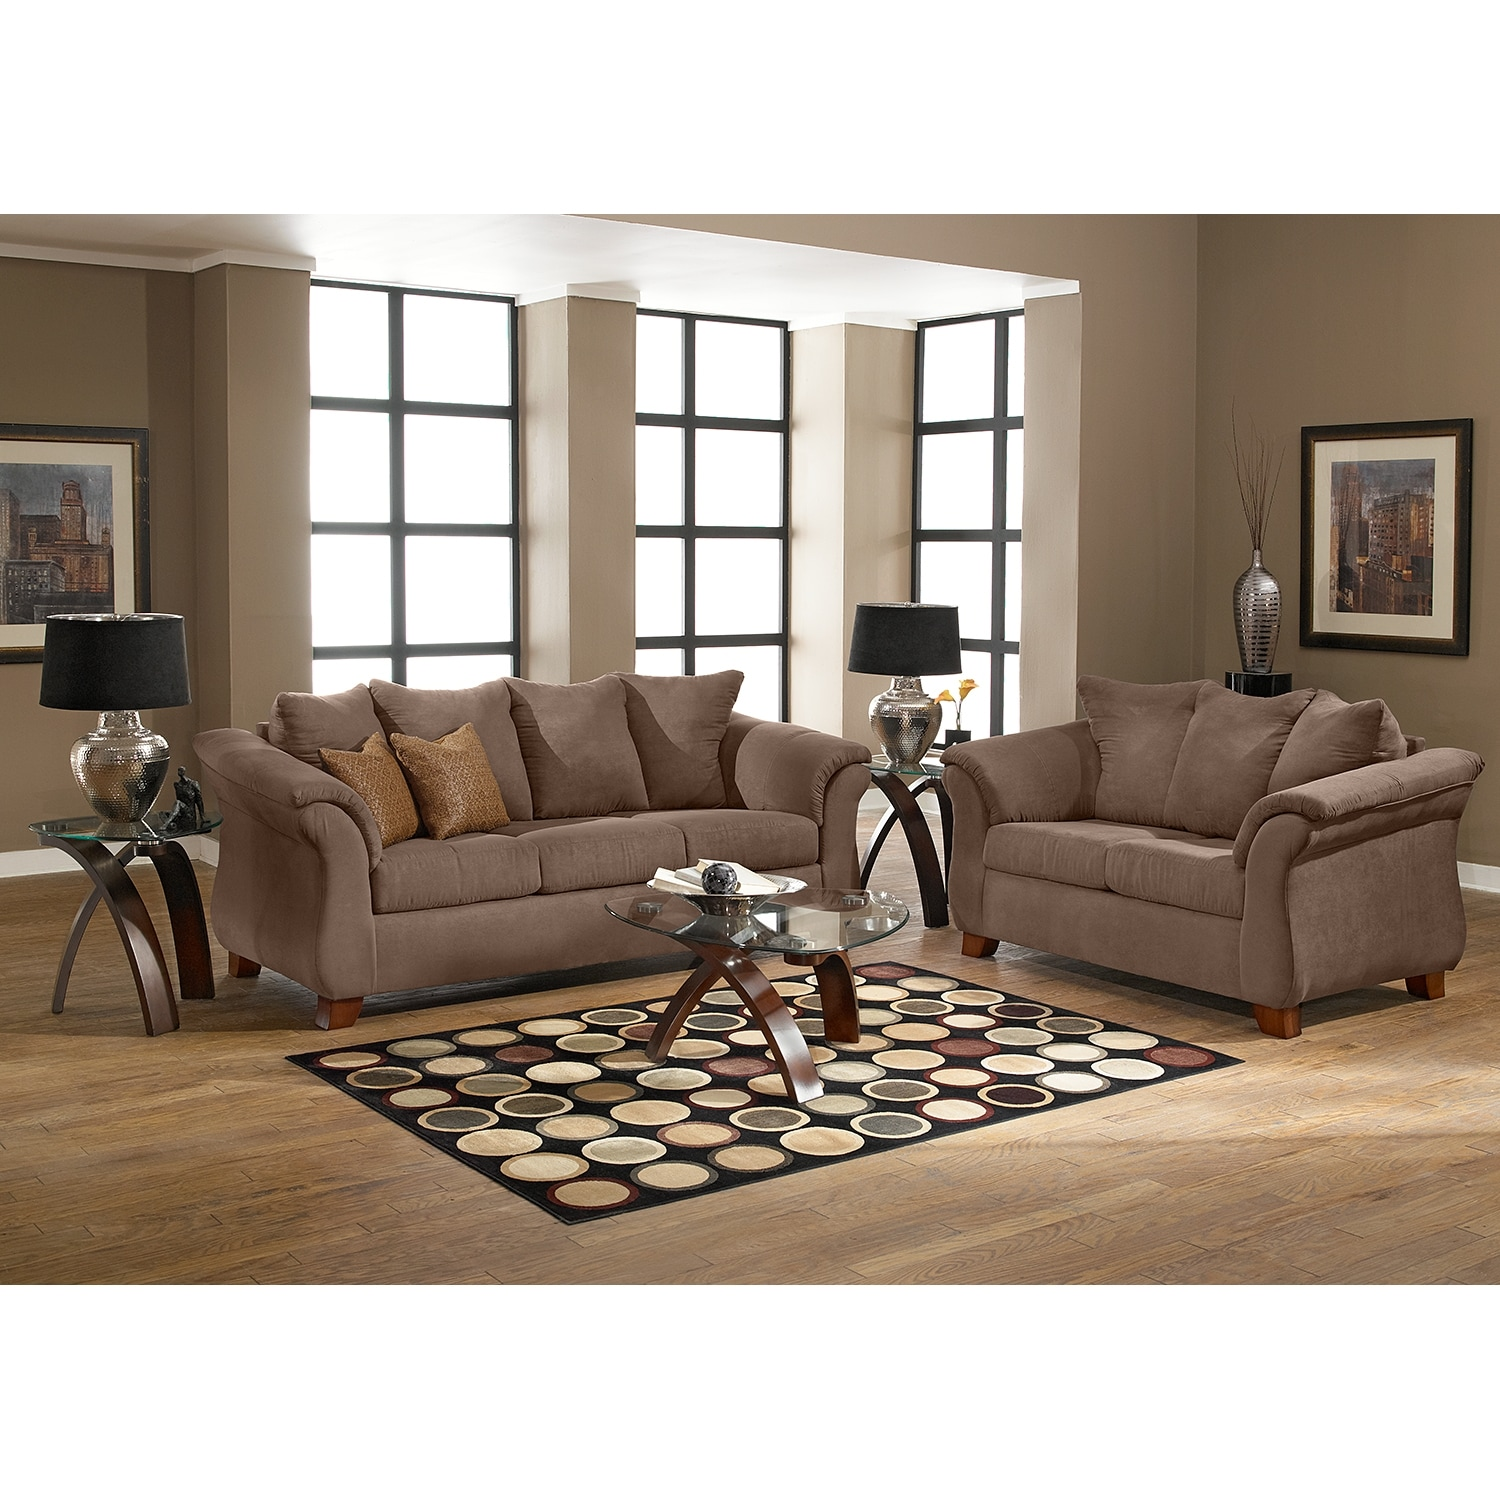 Adrian sofa taupe value city furniture Living room furniture styles and colors